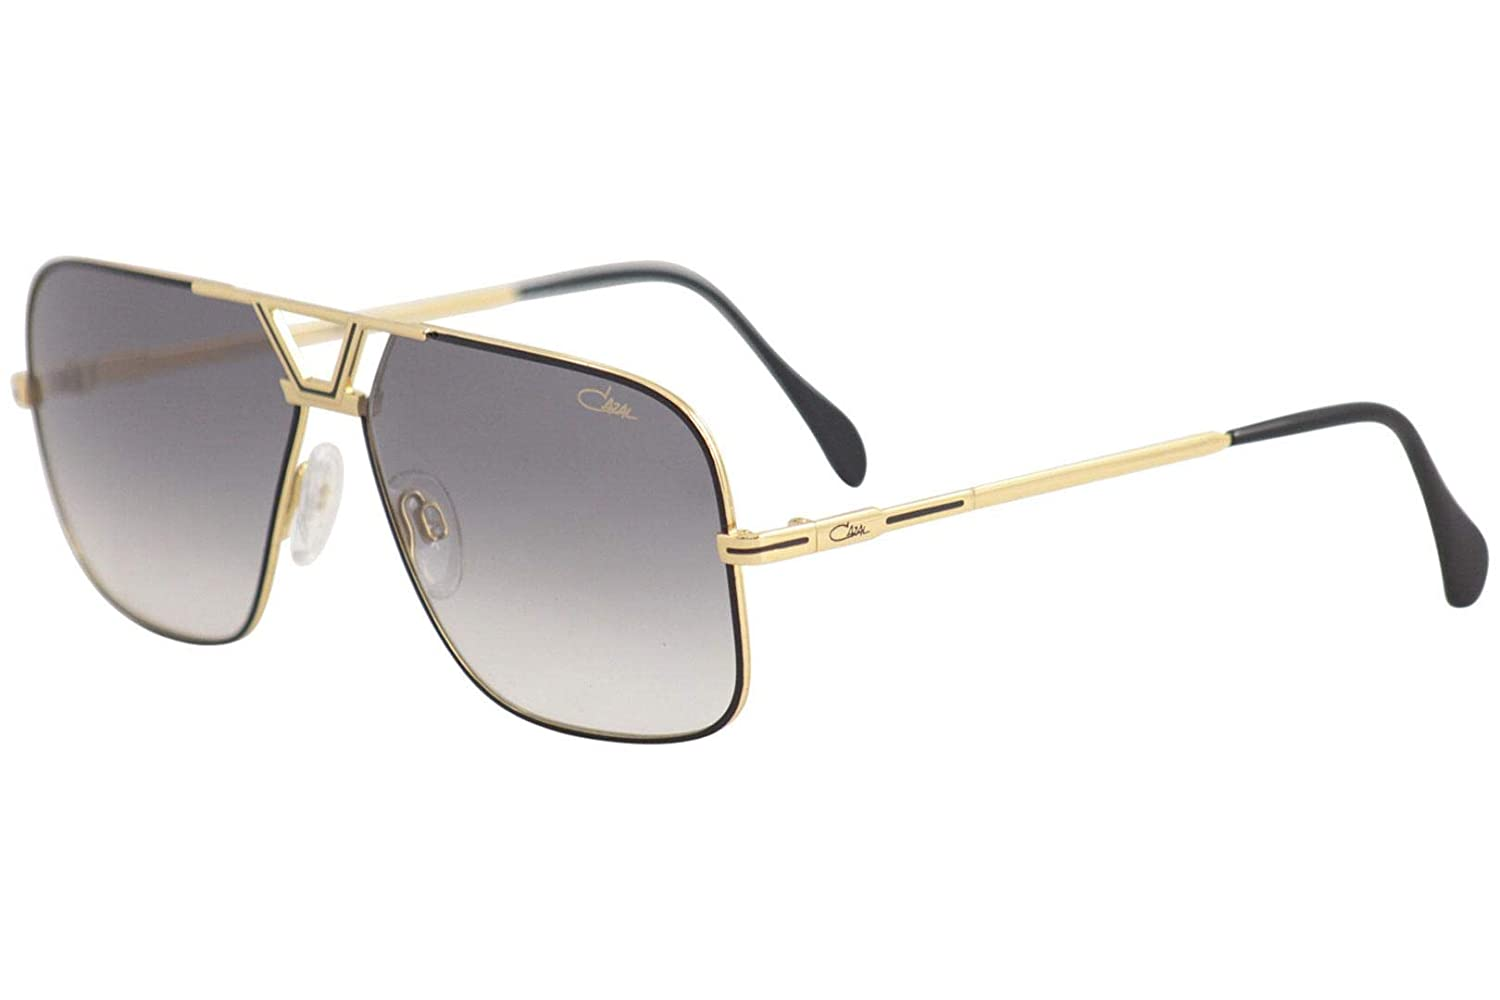 3a408d798ed8 Amazon.com  Cazal Legends 725 002SG Black Gold Metal Aviator Sunglasses  Grey Gradient Lens  Clothing